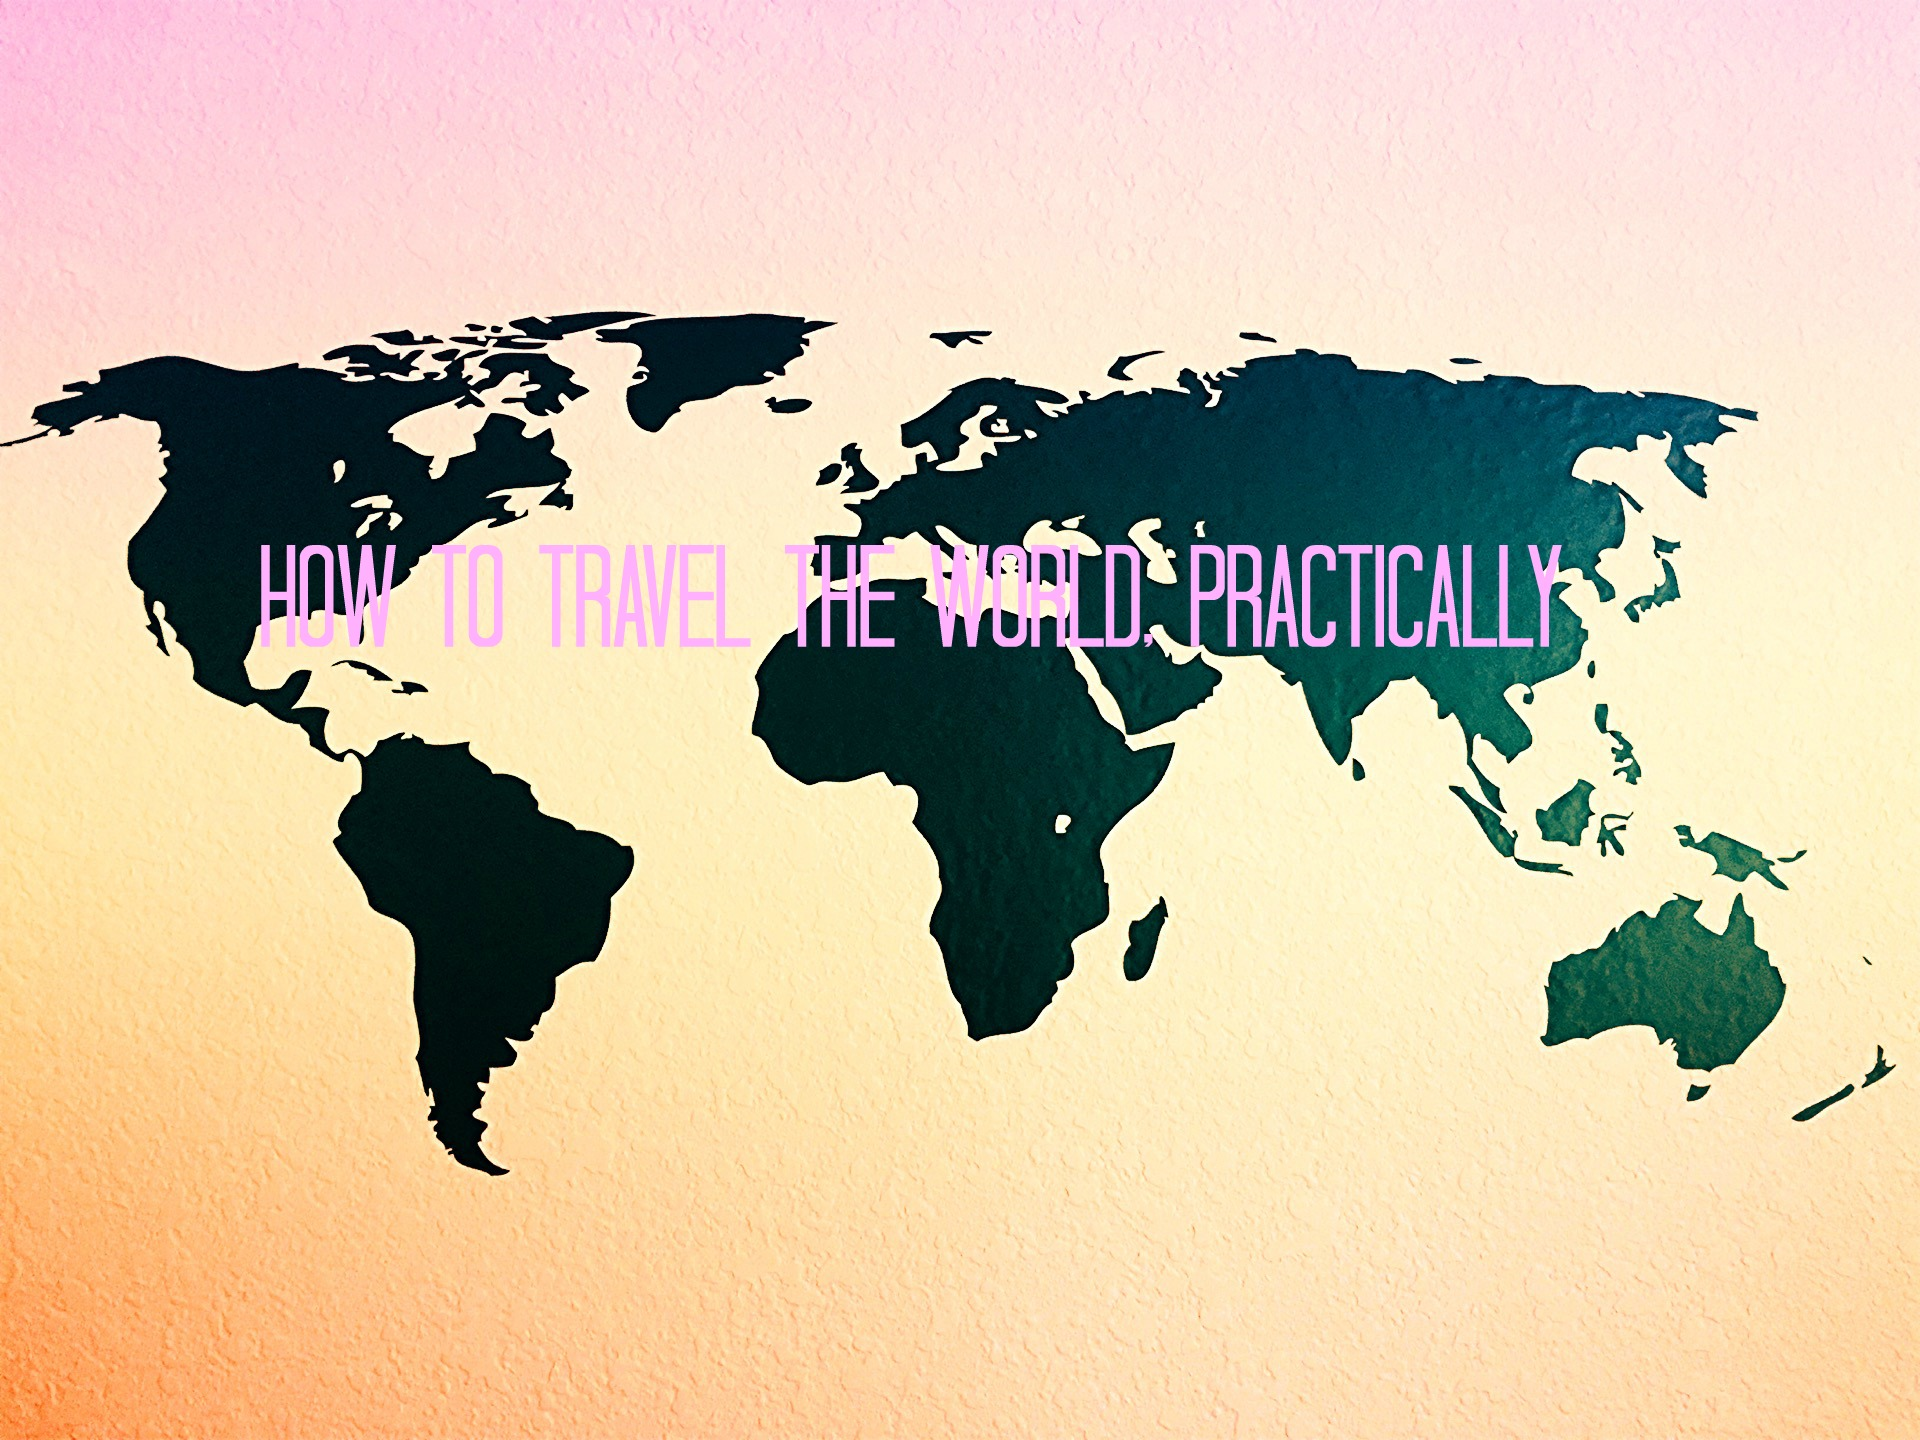 How to Travel the World, Practically